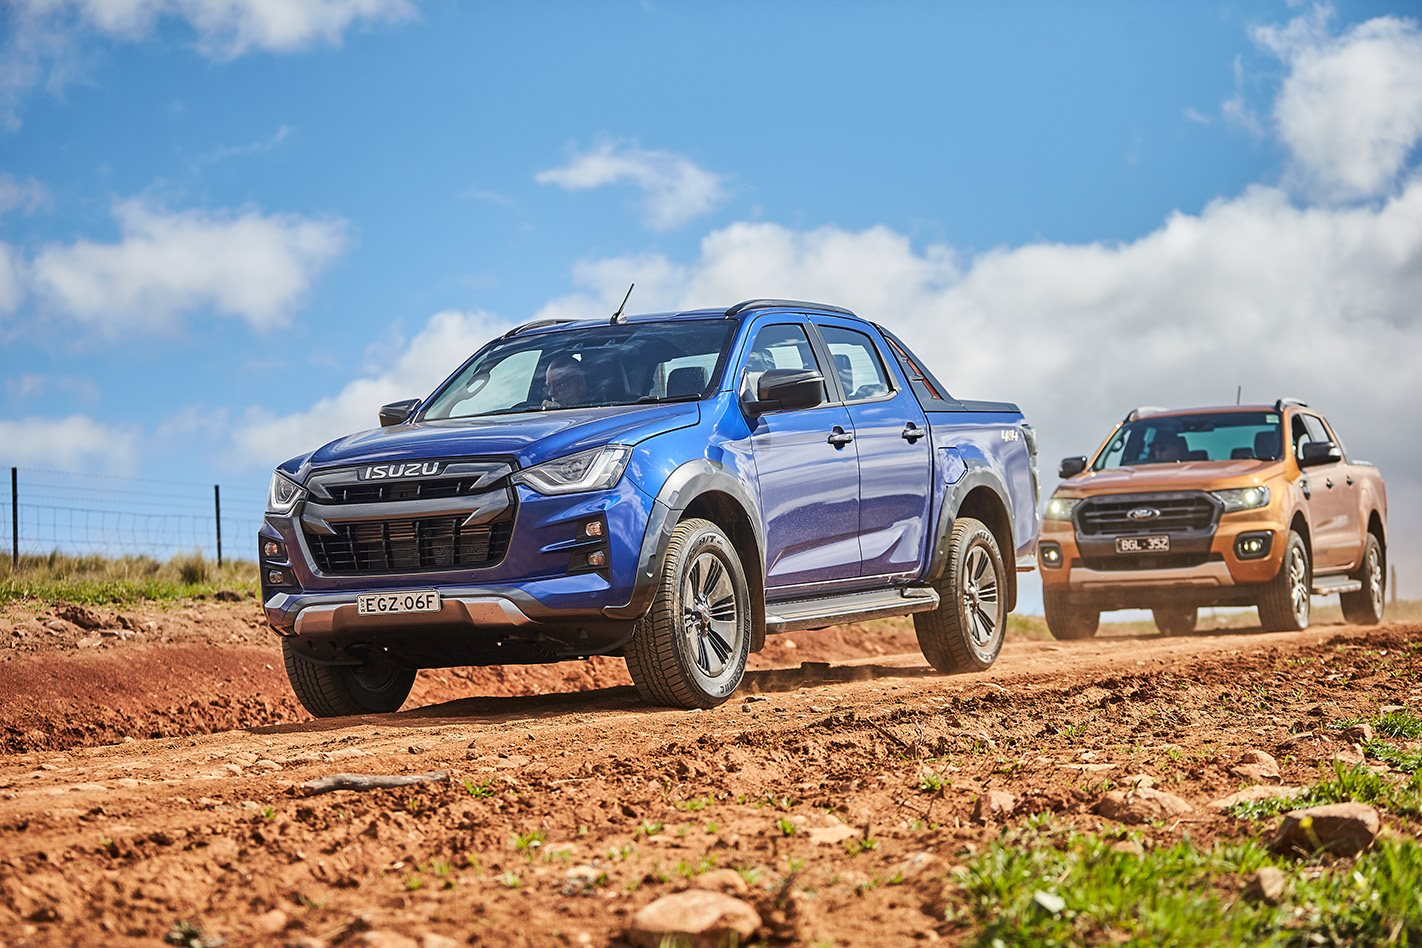 2020 Isuzu D-Max X-Terrain vs 2020 Ford Ranger Wildtrak comparison test